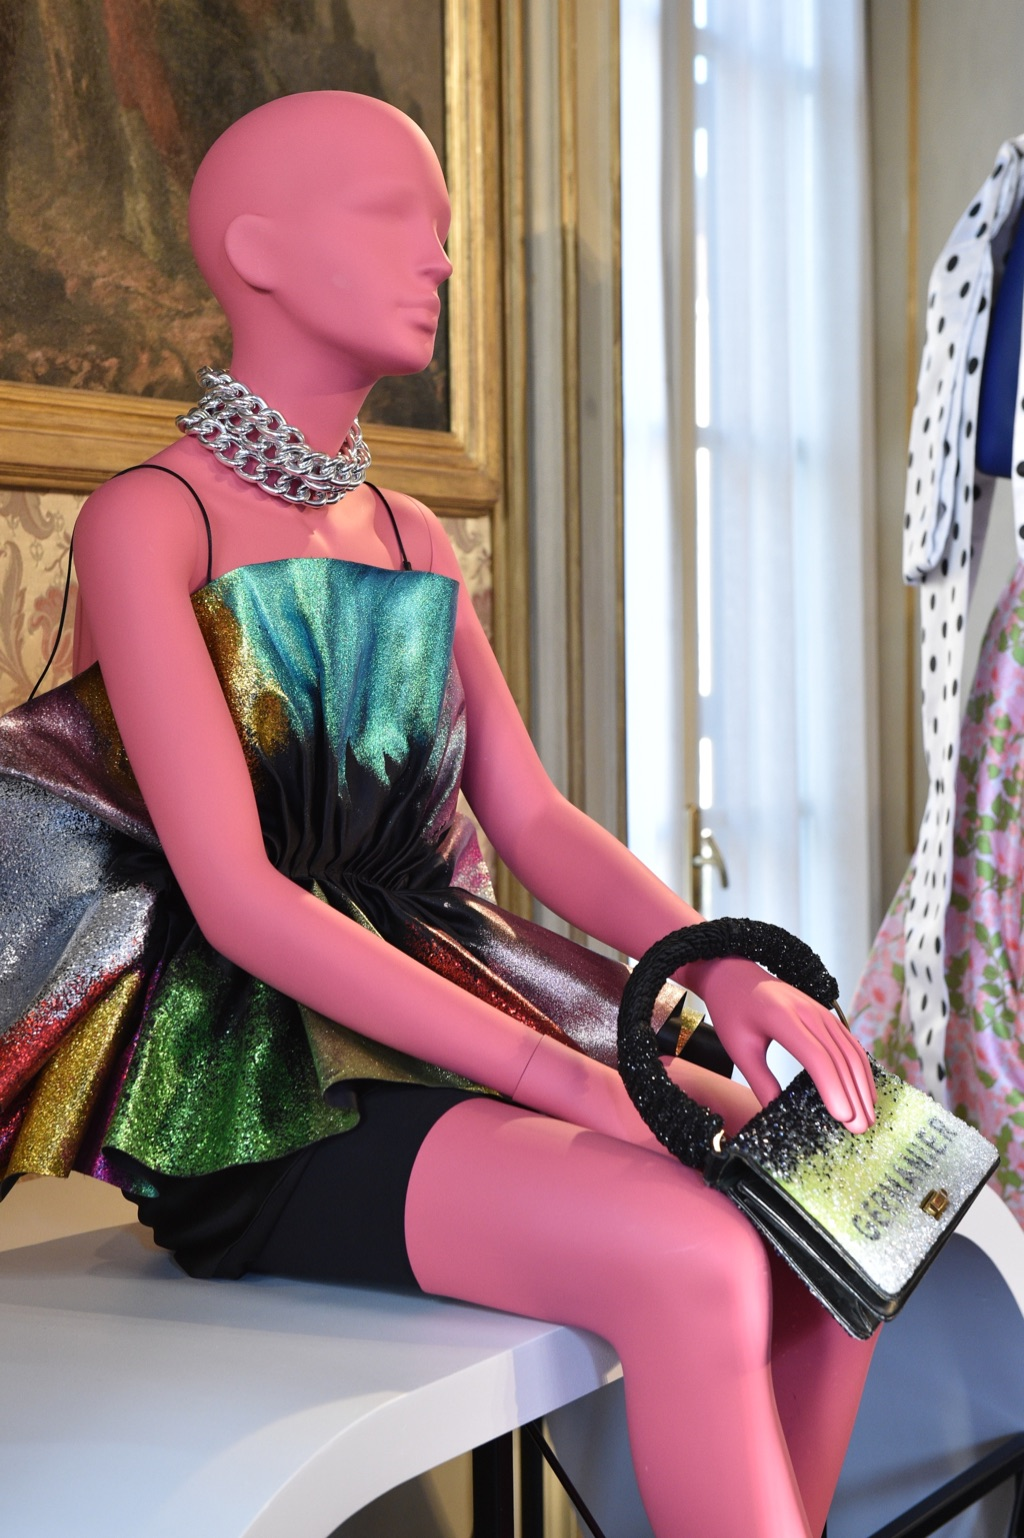 A pink seated female mannequin